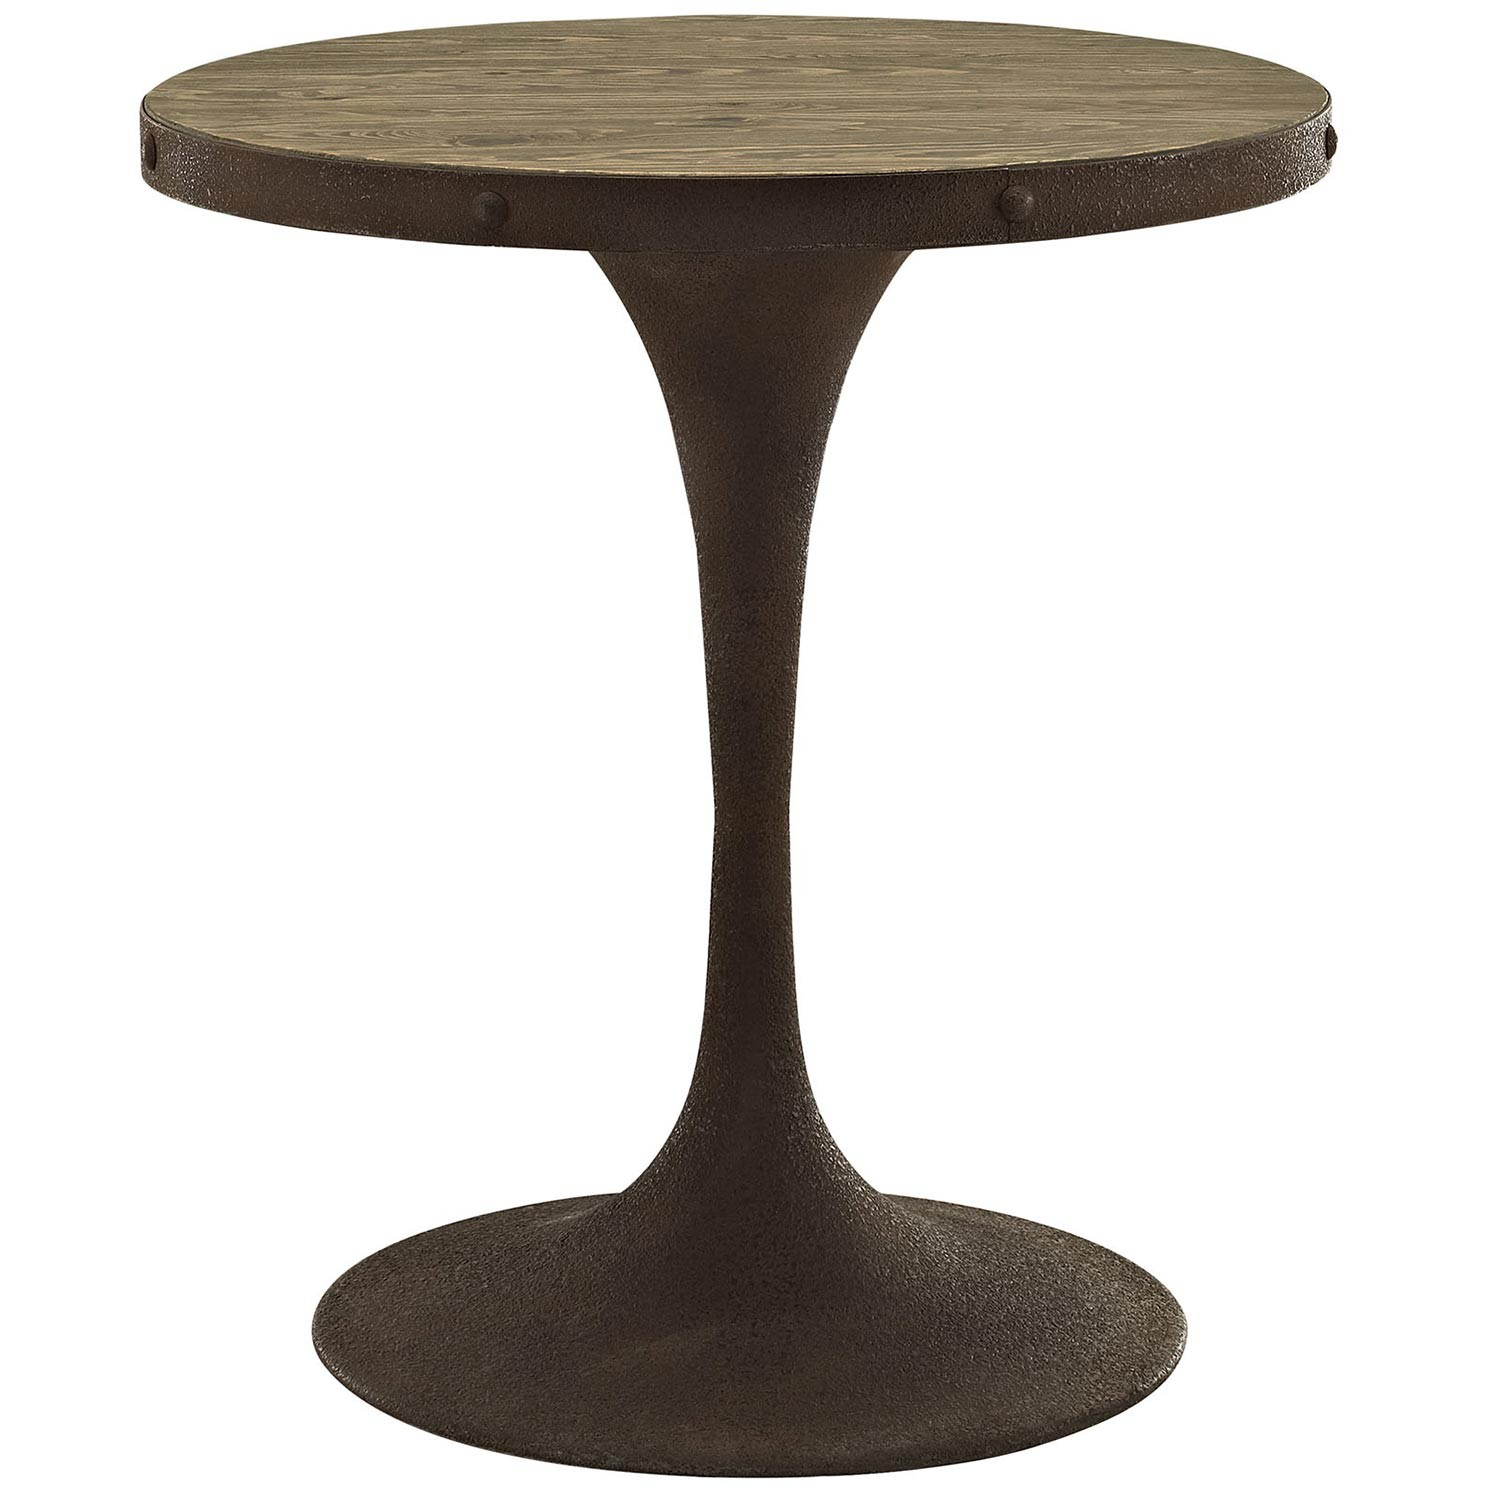 Modway Drive 28-inch Wood Top Dining Table - Brown